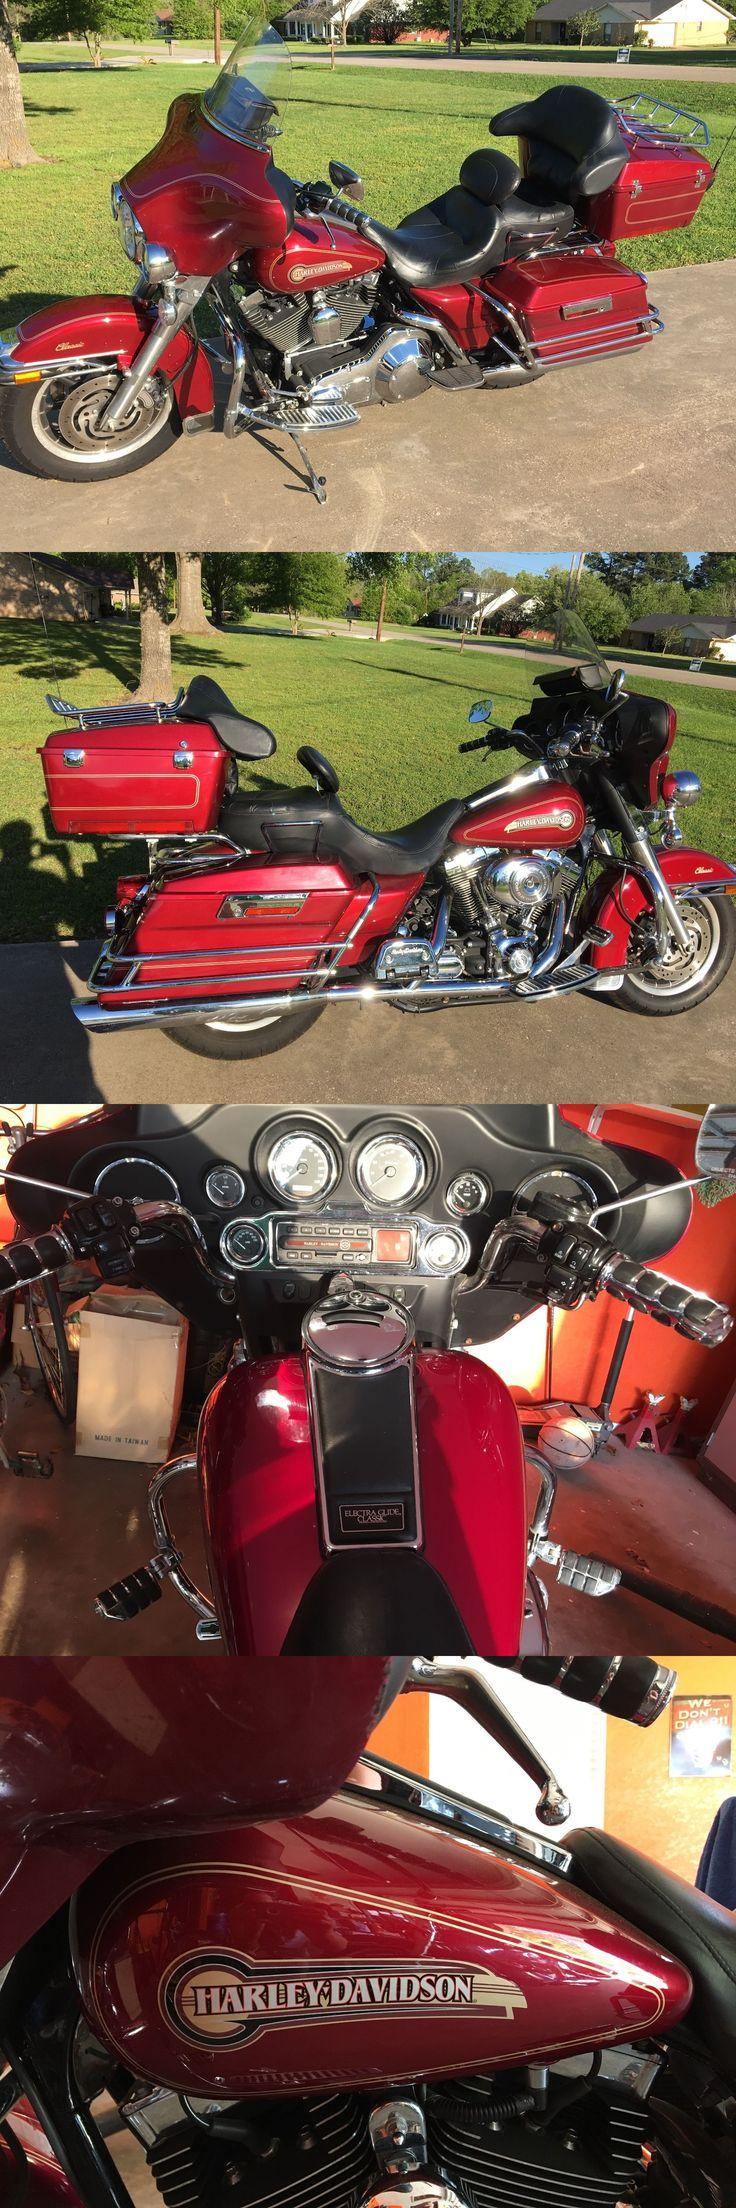 Motorcycles: 2005 Harley-Davidson Touring Red Harley Davidson Touring Bike Electra Glide Classic Flhtci -> BUY IT NOW ONLY: $7650 on eBay!